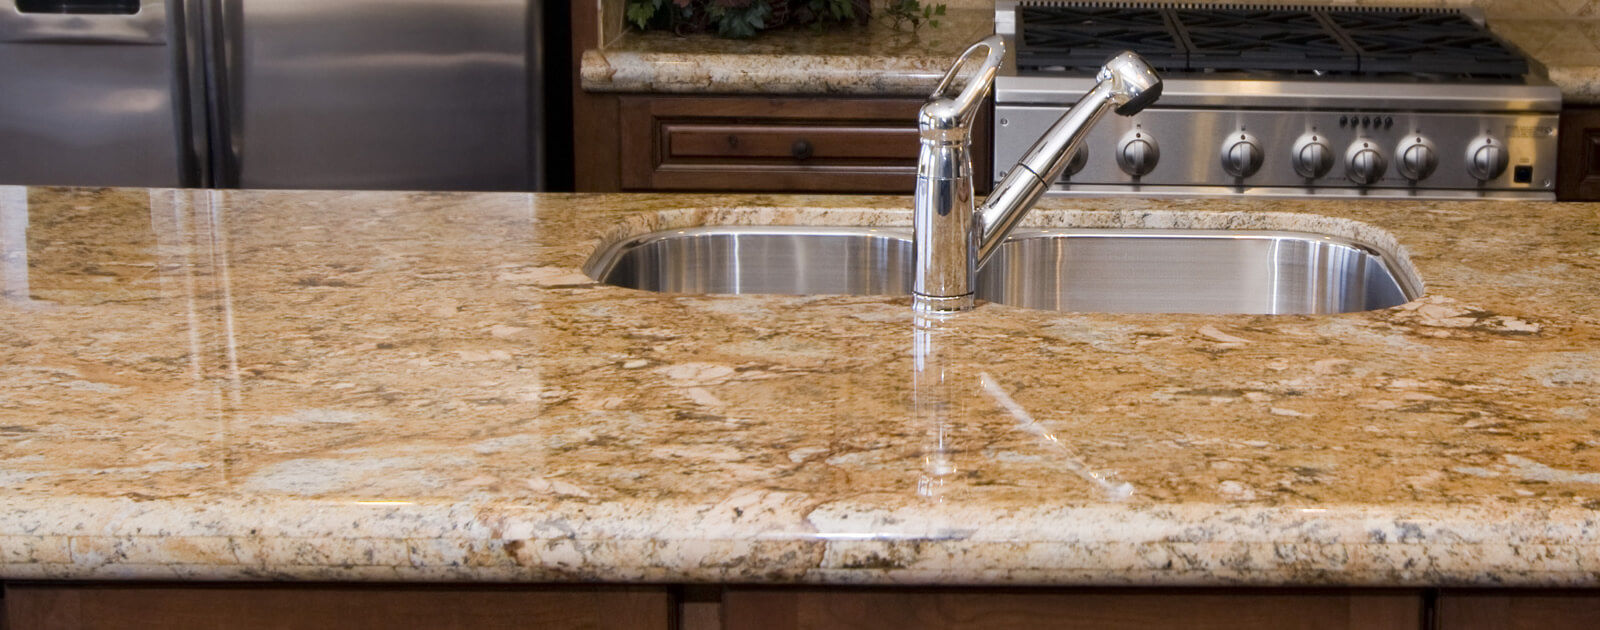 masters granit photo gallery countertops kitchen countertop of nashville granite